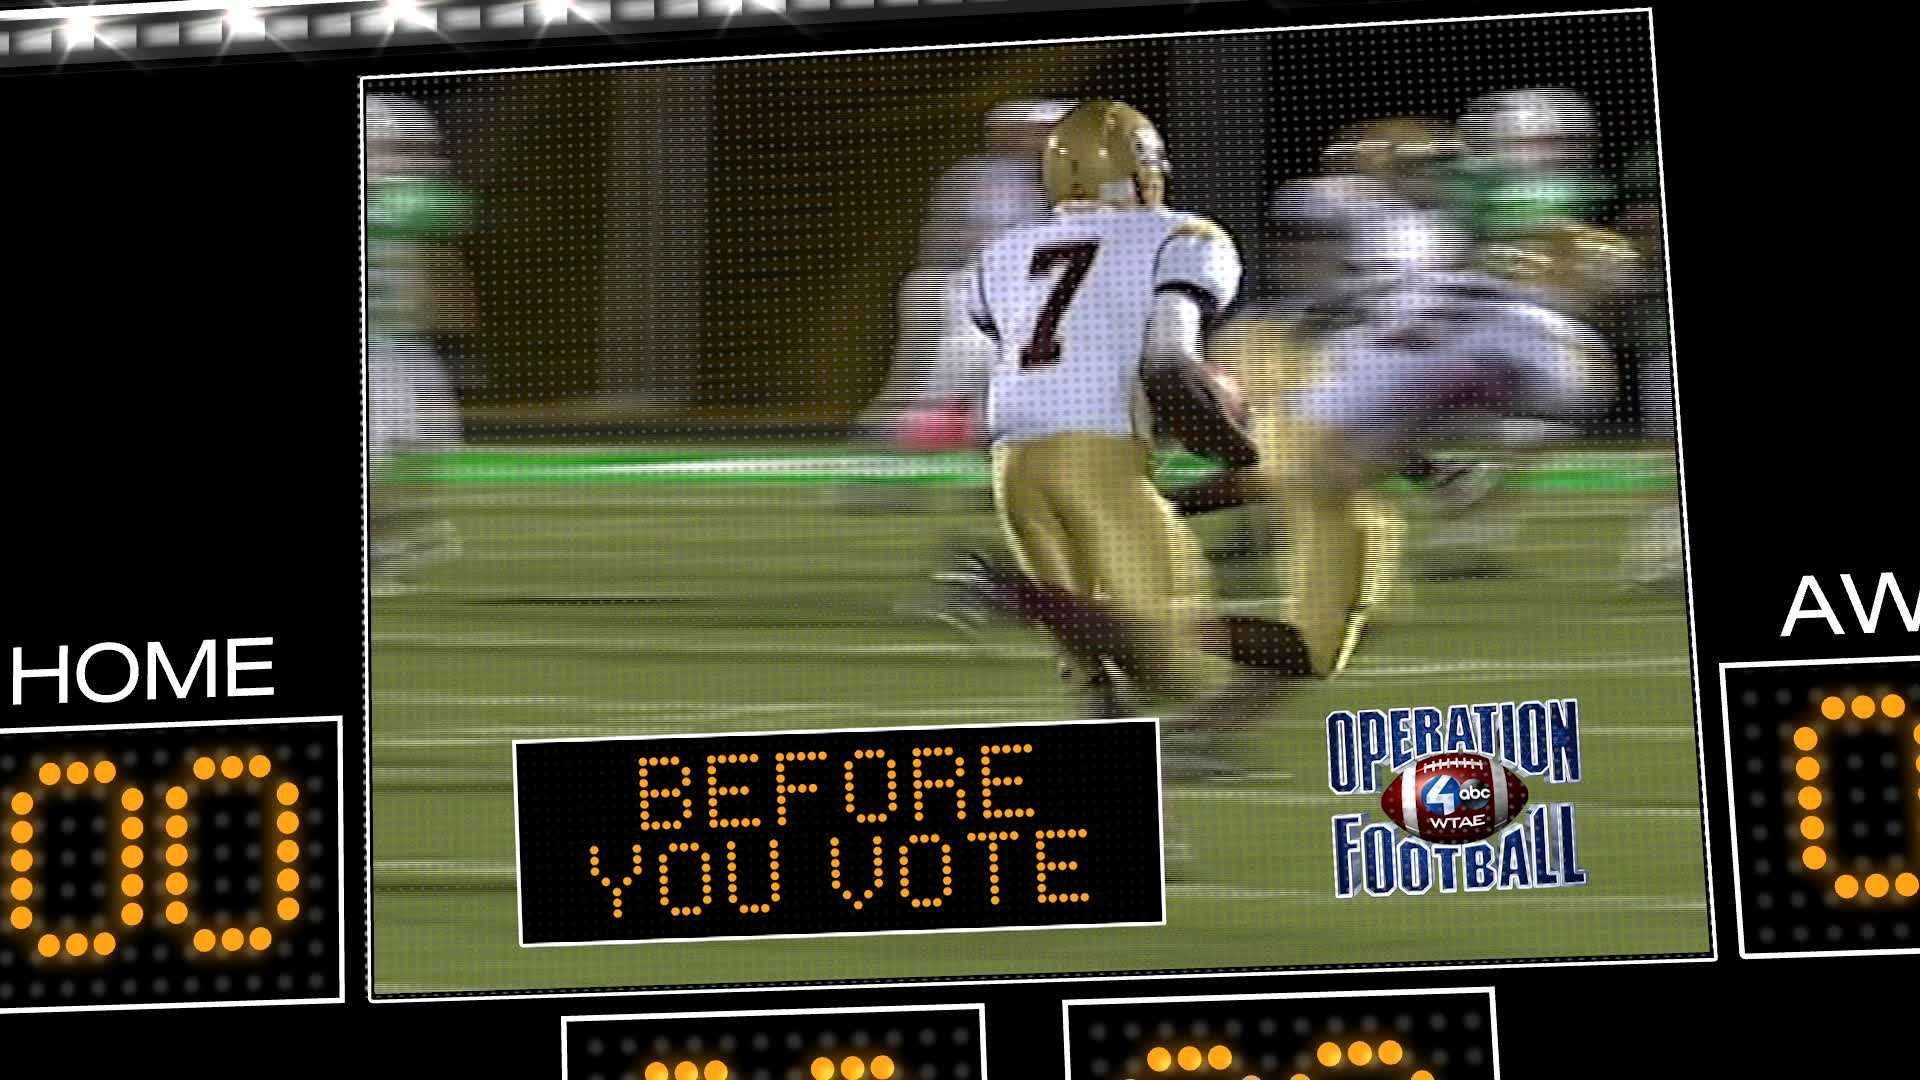 Join Action Sports Guy Junker on Friday nights as we show off the hottest plays of the week, then vote here on WTAE.com for the winner.